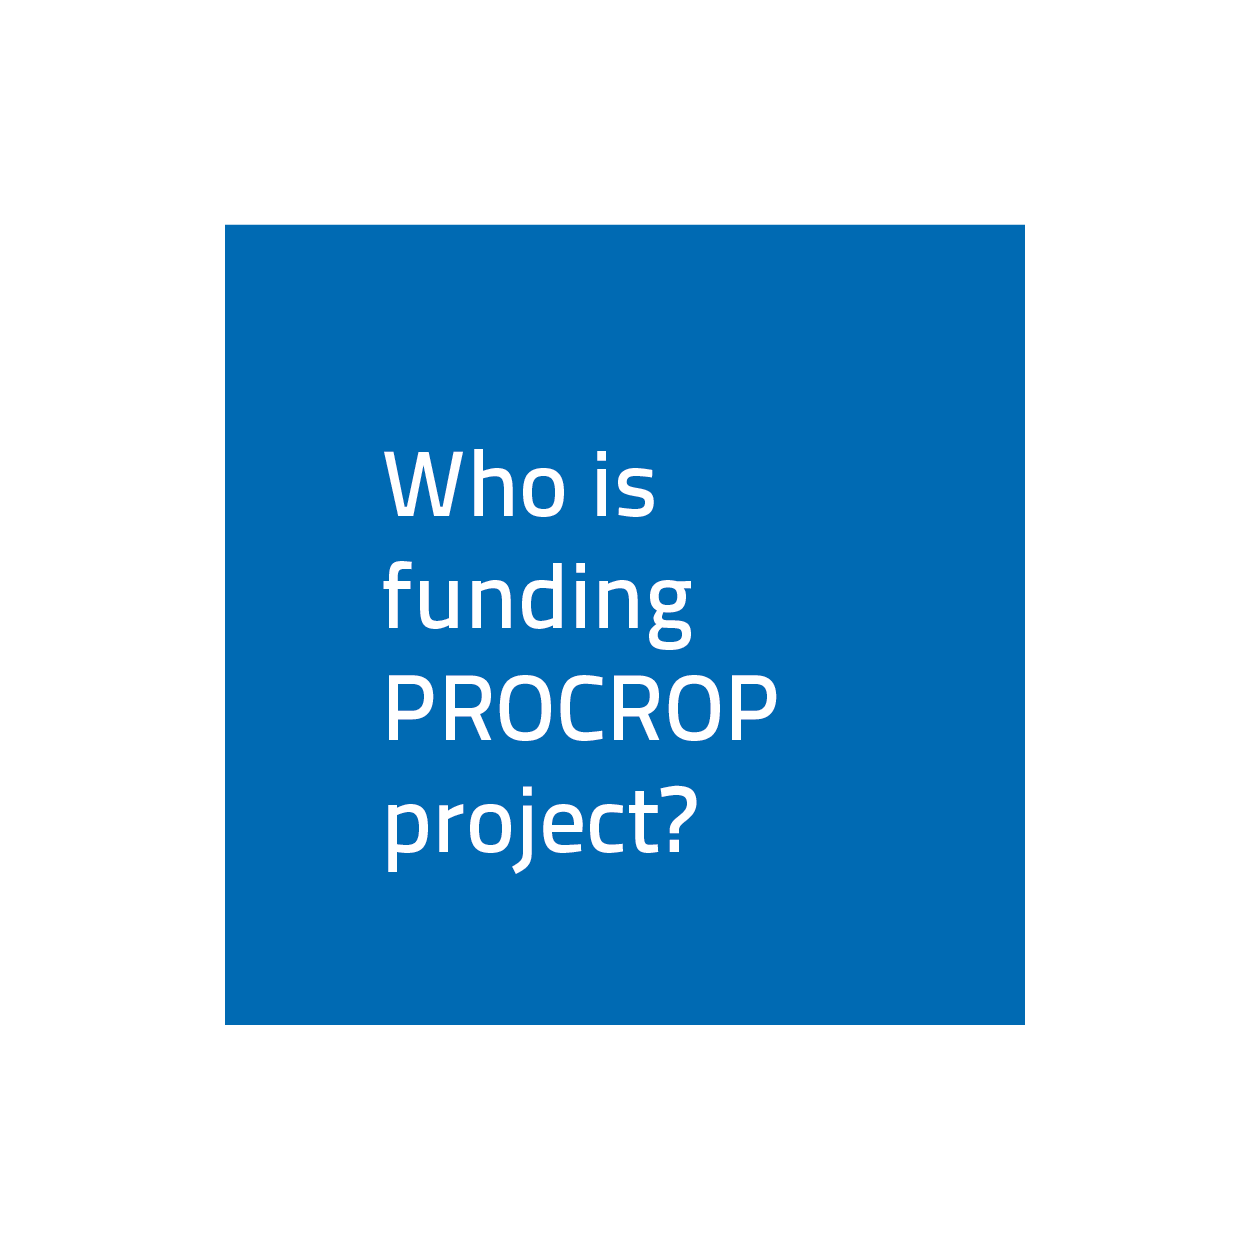 Who is funding PROCROP project?